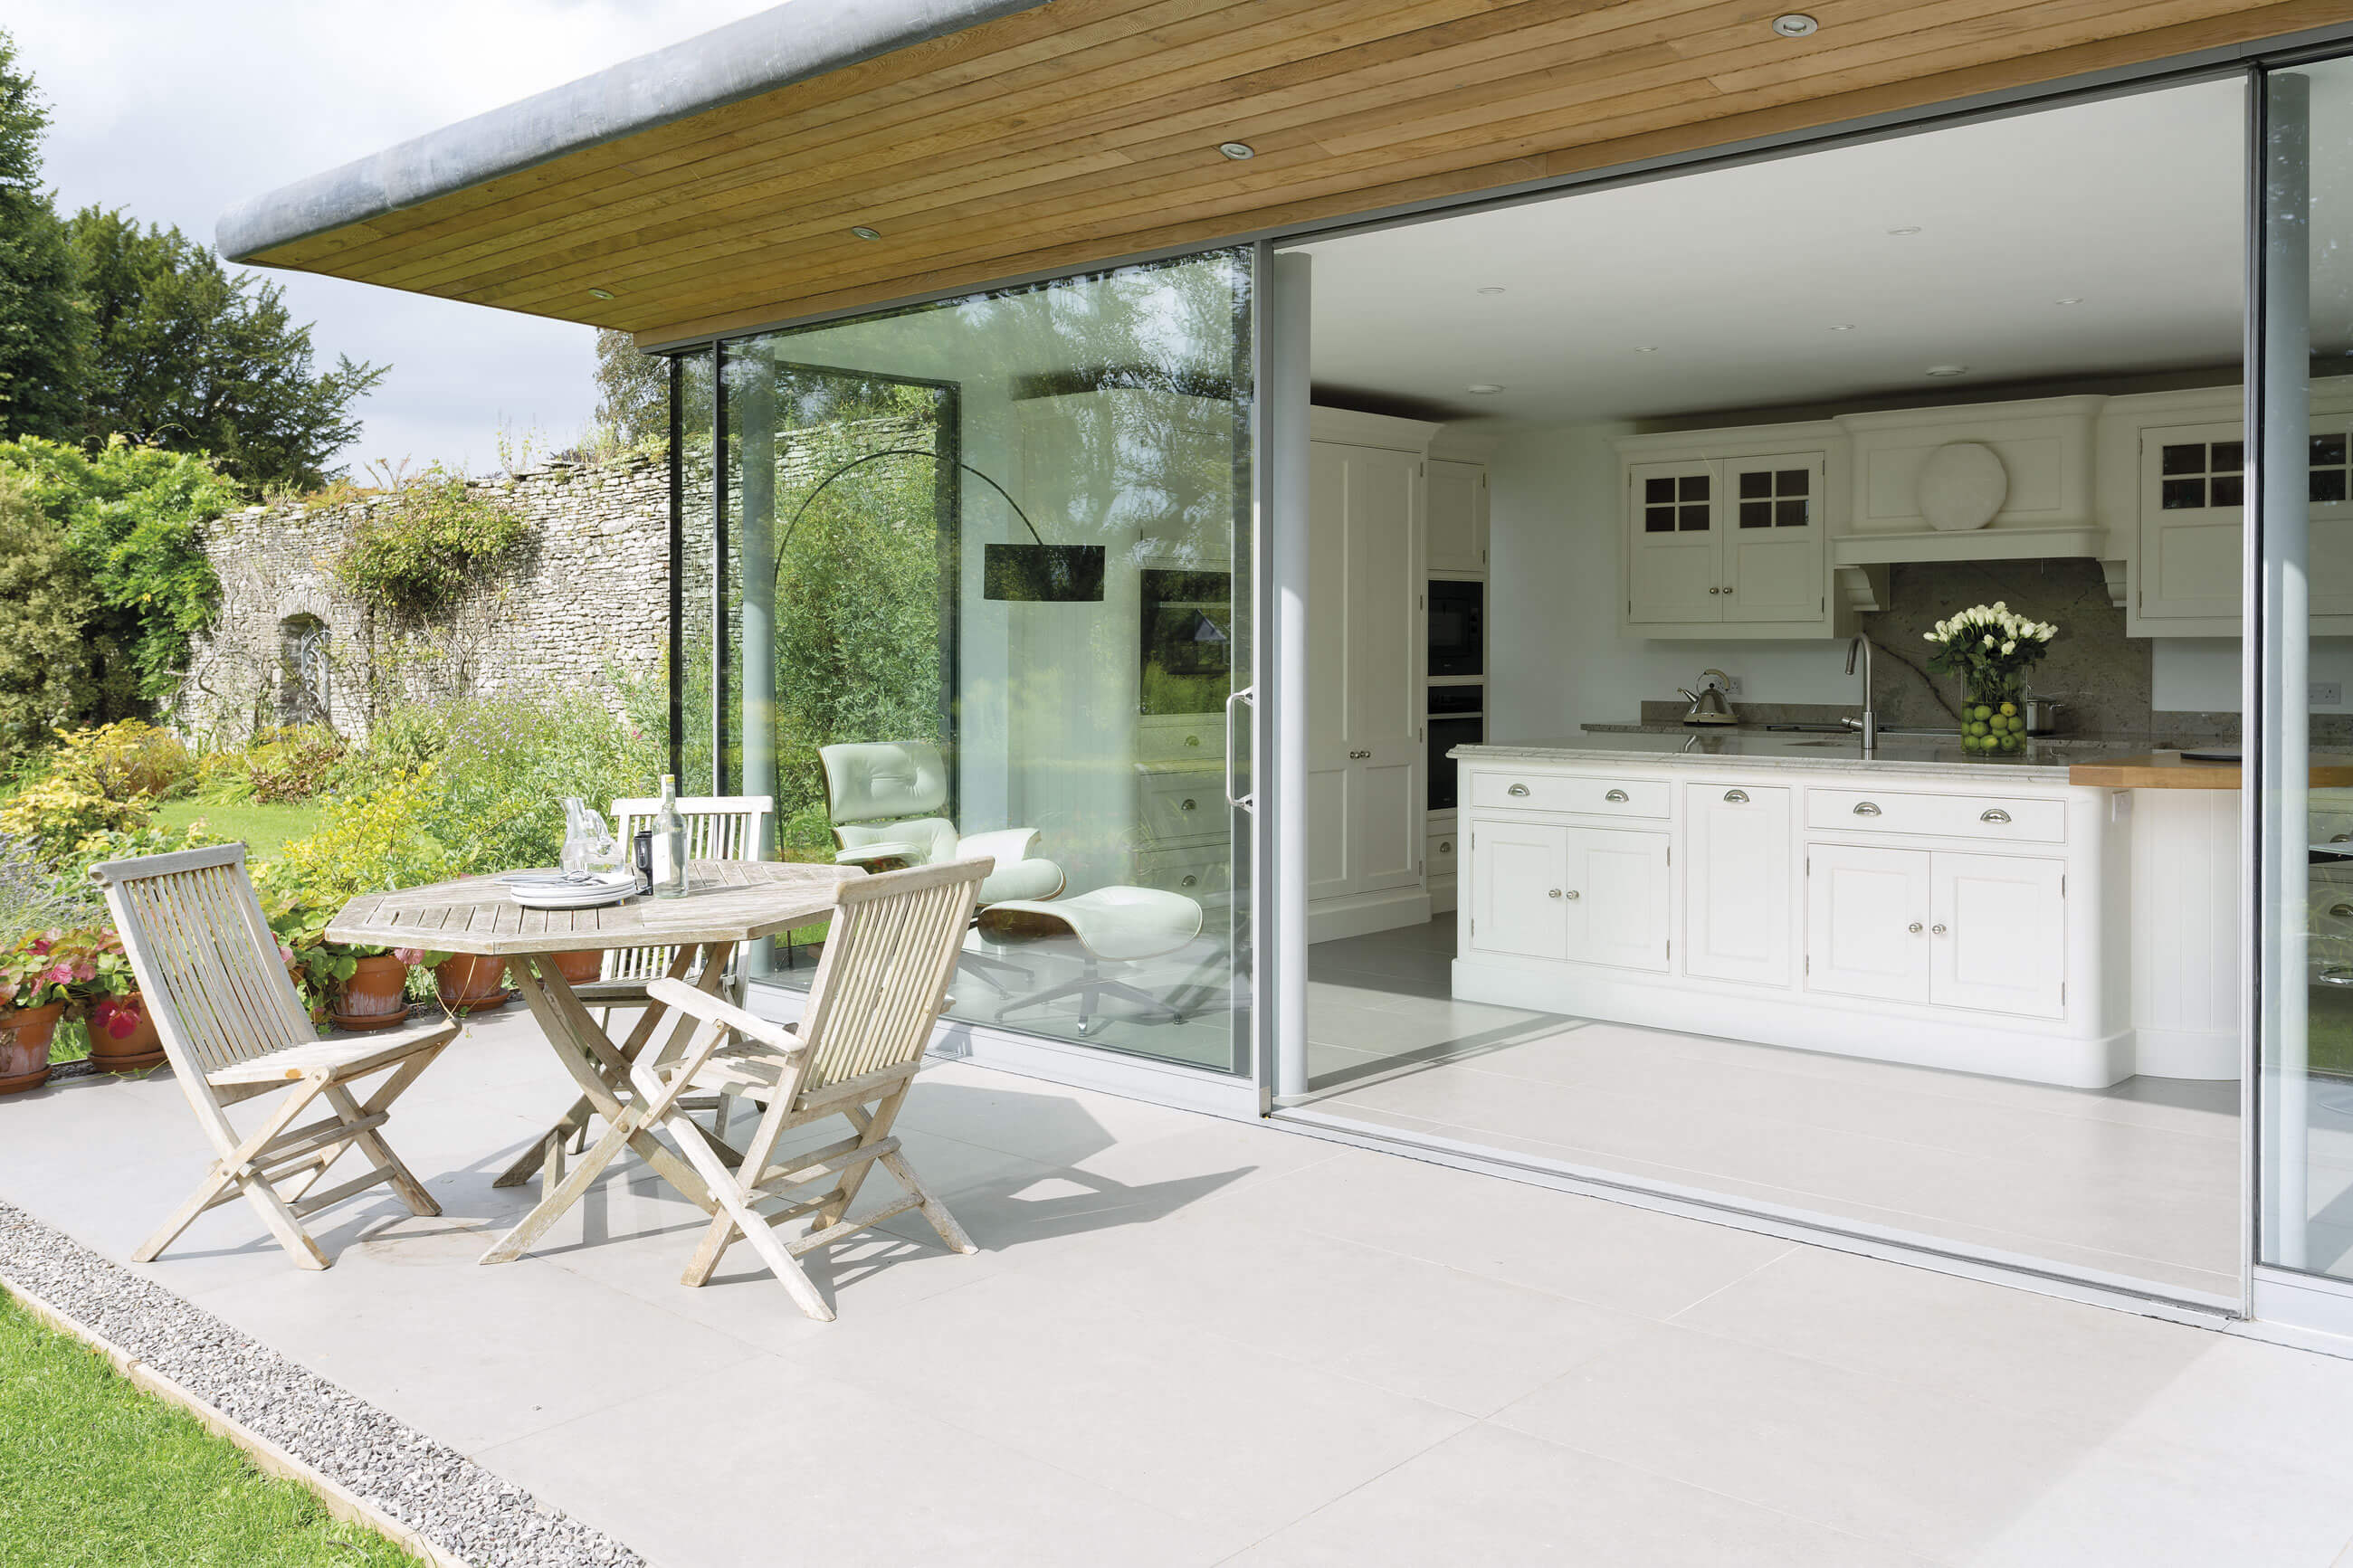 Indoor outdoor kitchen tom howley for Indoor outdoor kitchen designs